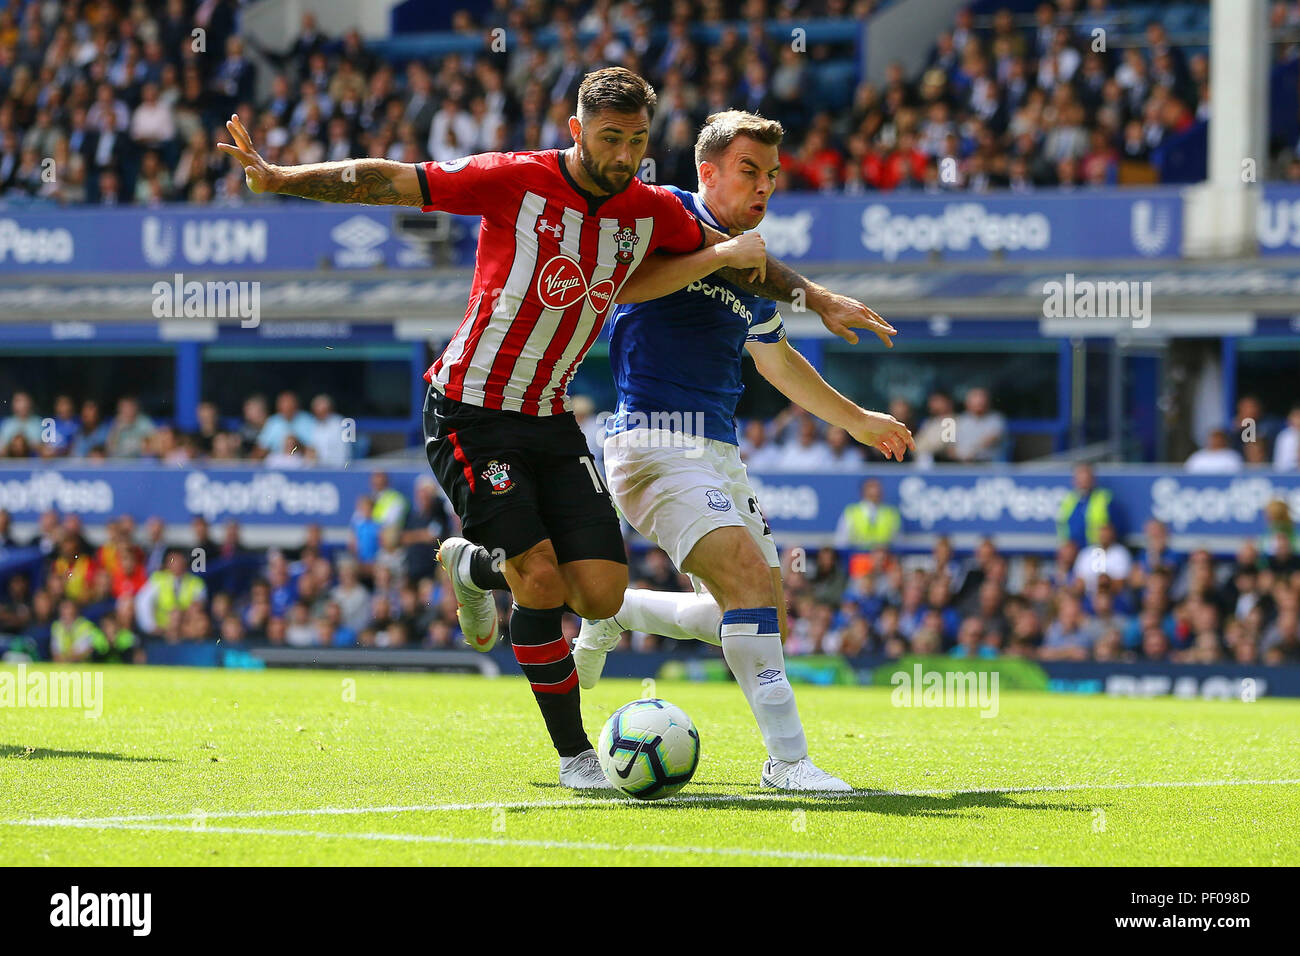 Liverpool Uk 18th August 2018 Charlie Austin Of Southampton L Battles With Seamus Coleman Of Everton